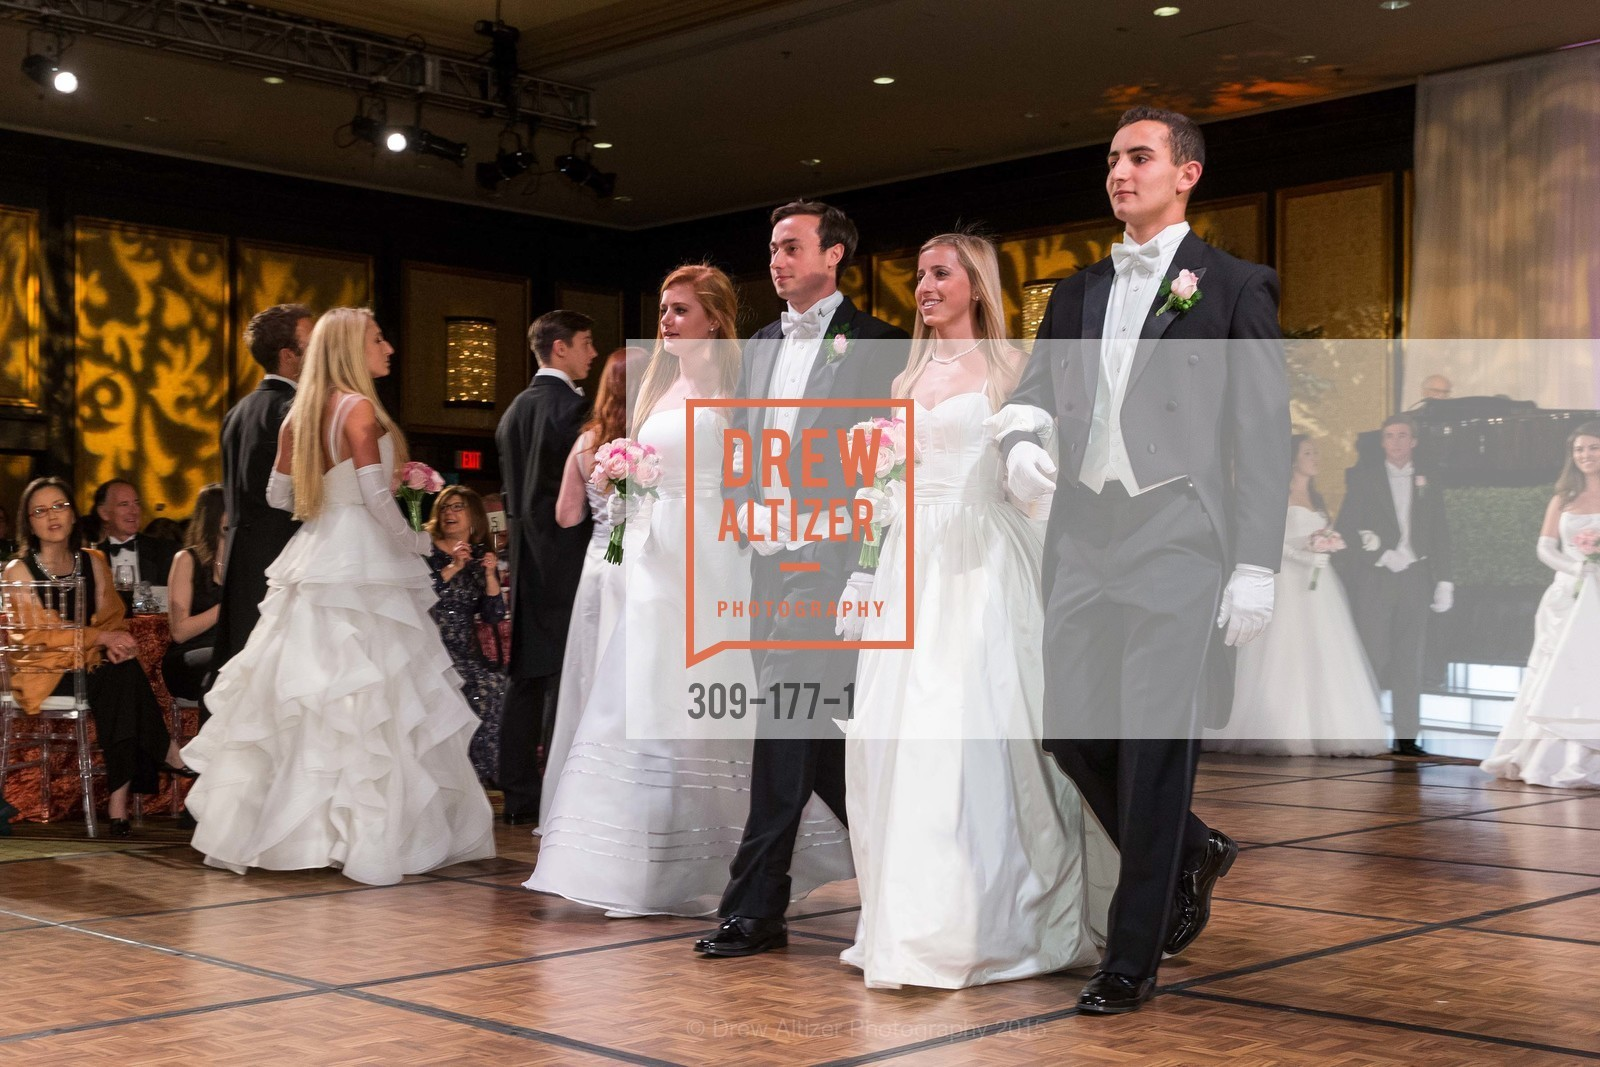 Camille Rich, Kevin Michael Mannix II, Jennifer Suzanne Reynolds, Maxwell Tucker Brenner, The 2015 San Francisco Debutante Ball, The Westin St. Francis San Francisco Union Square. 335 Powell St, June 20th, 2015,Drew Altizer, Drew Altizer Photography, full-service agency, private events, San Francisco photographer, photographer california